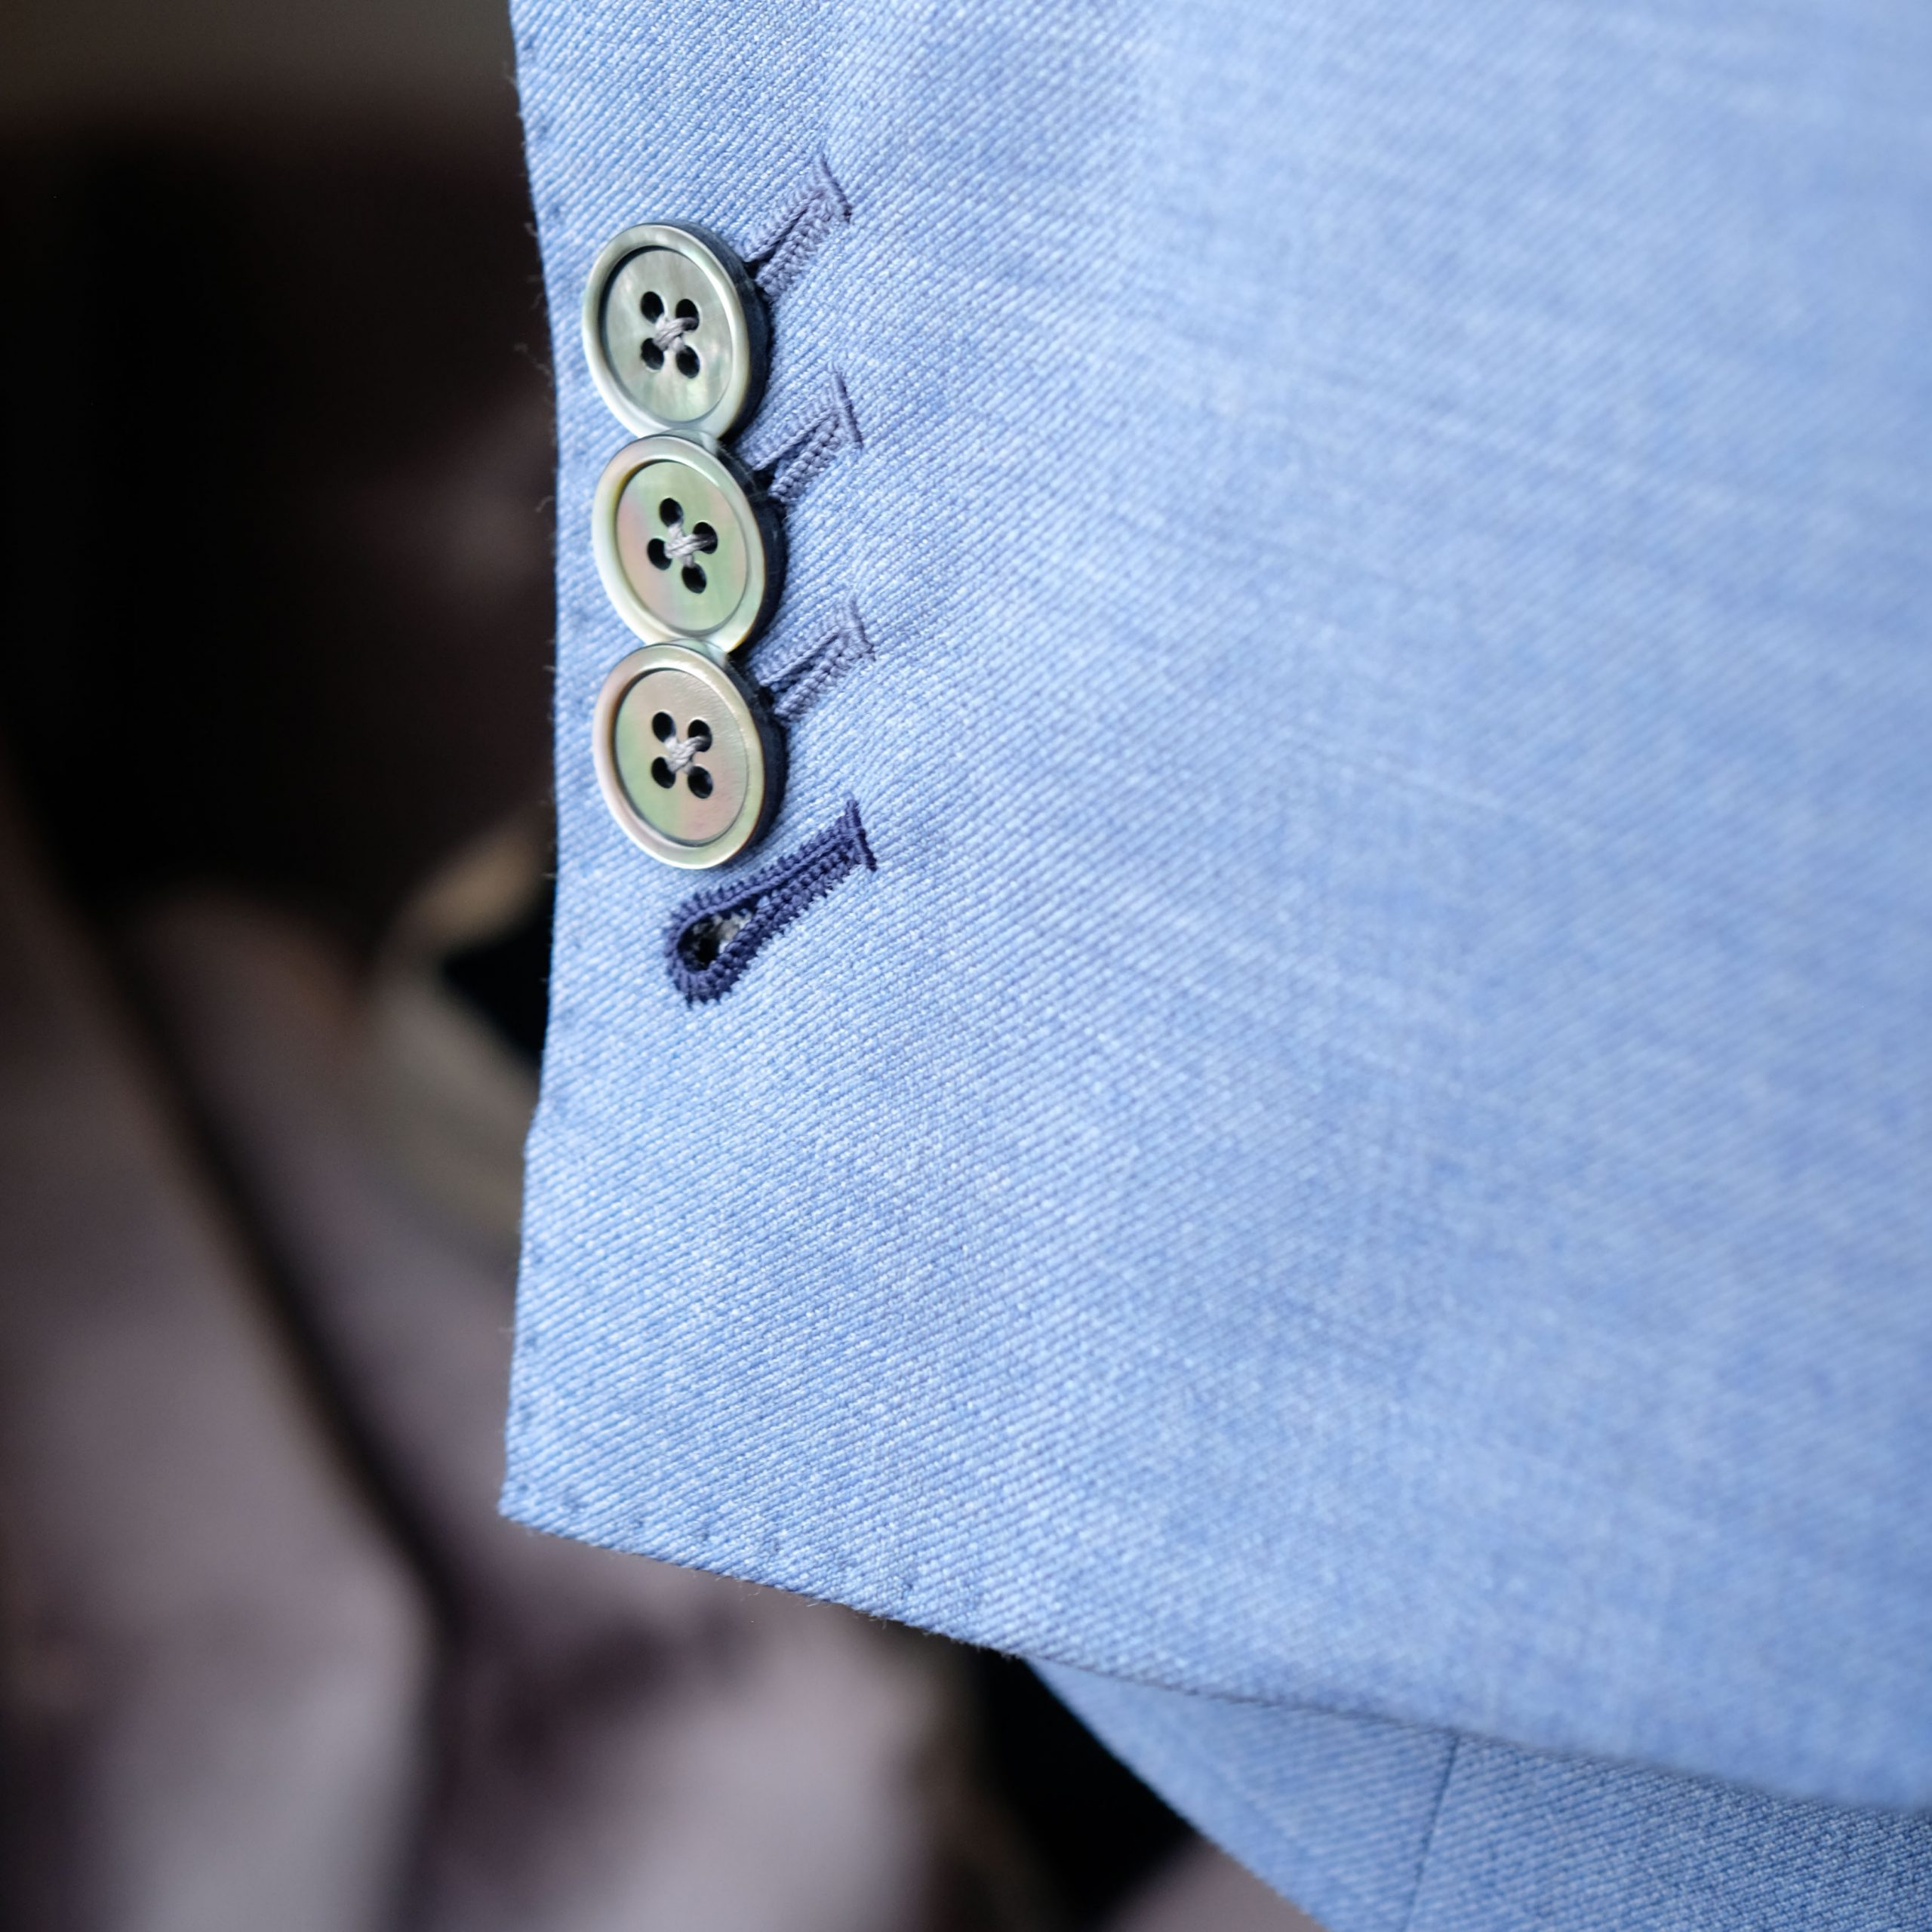 Shell Buttons with Surgeons Cuffs